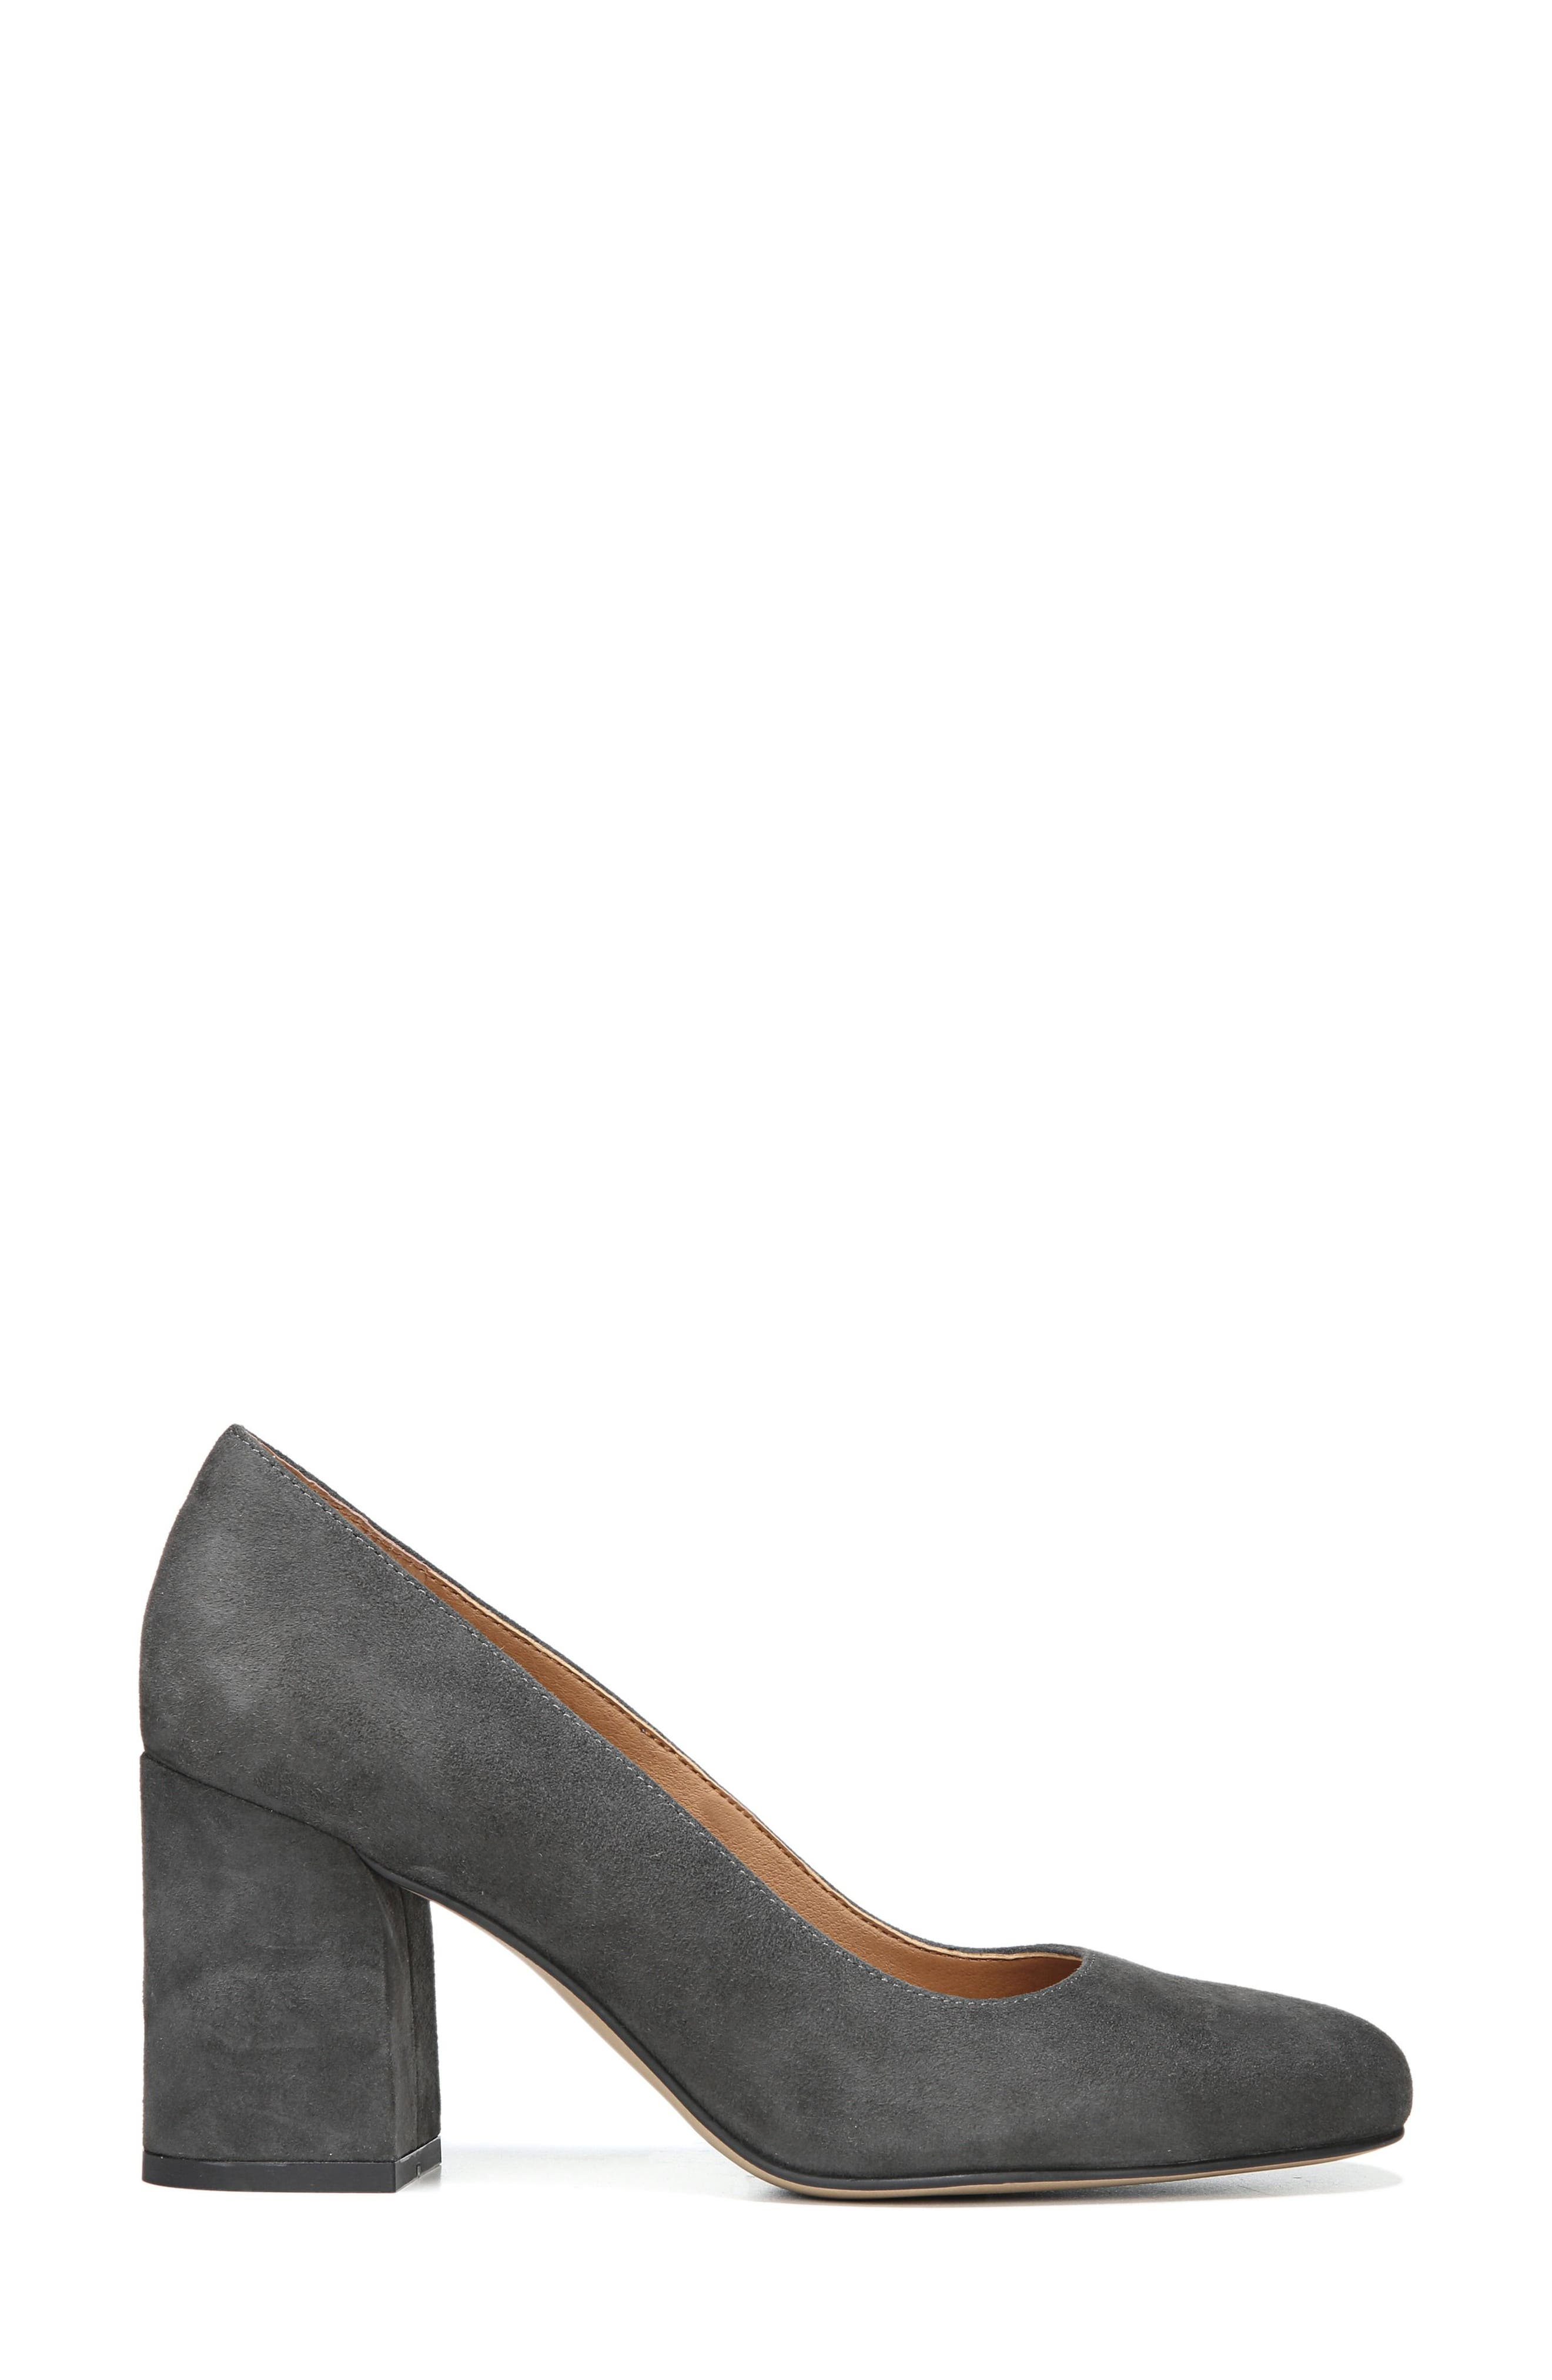 Alternate Image 3  - SARTO by Franco Sarto Taisley Pump (Women)